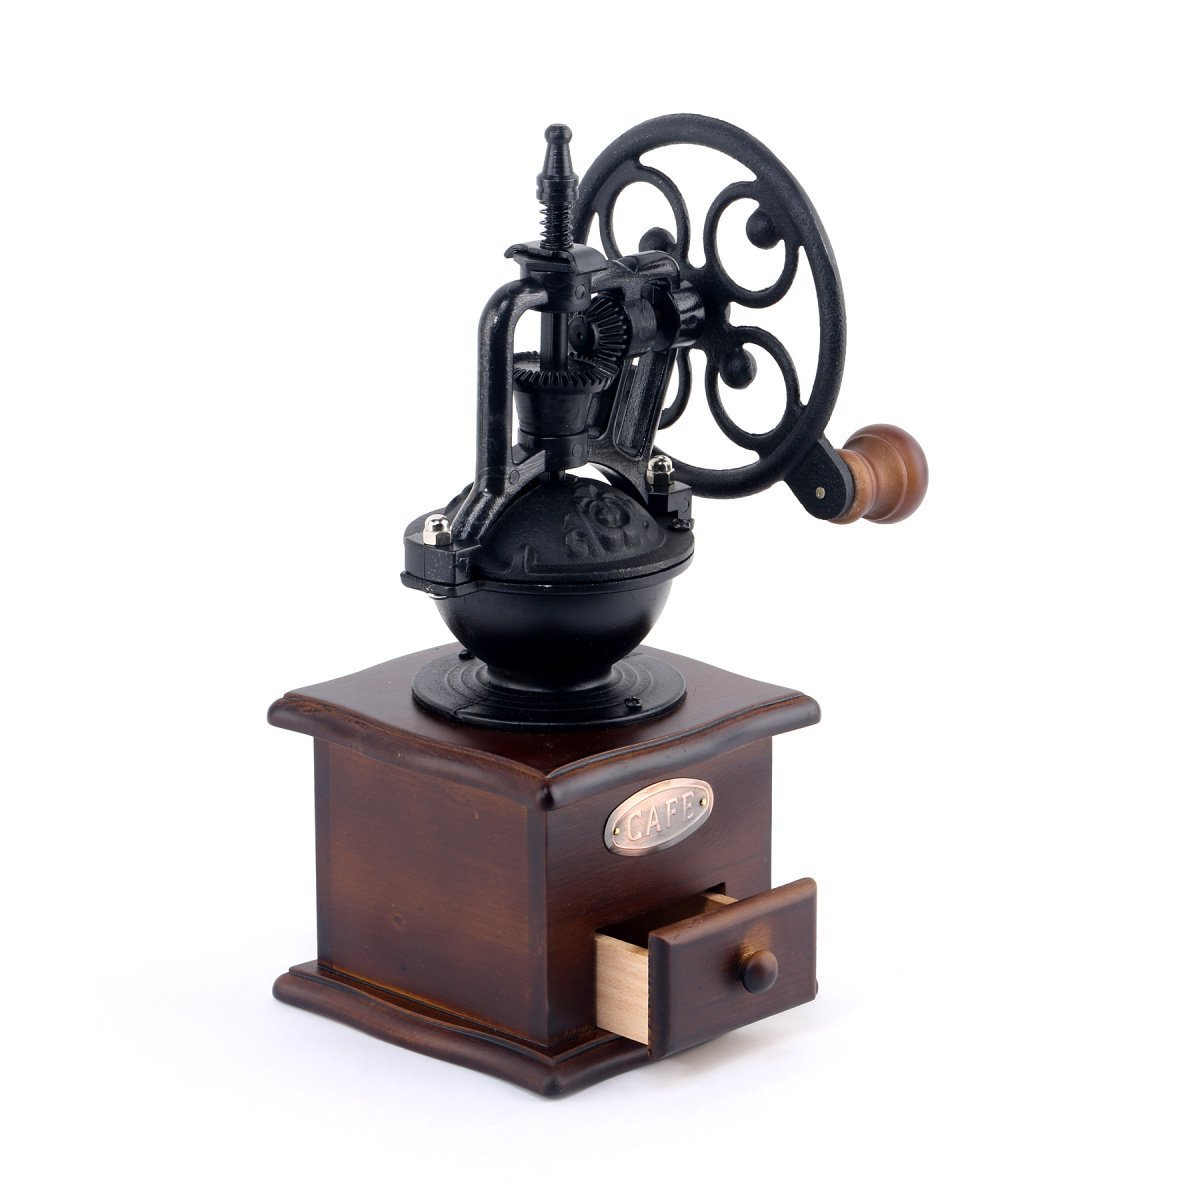 Foruchoice Manual Coffee Grinder Antique Cast Iron Hand Crank Coffee Mill With Grind Settings & Catch Drawer 12.5 x 12.5 x 26 cm by Foruchoice